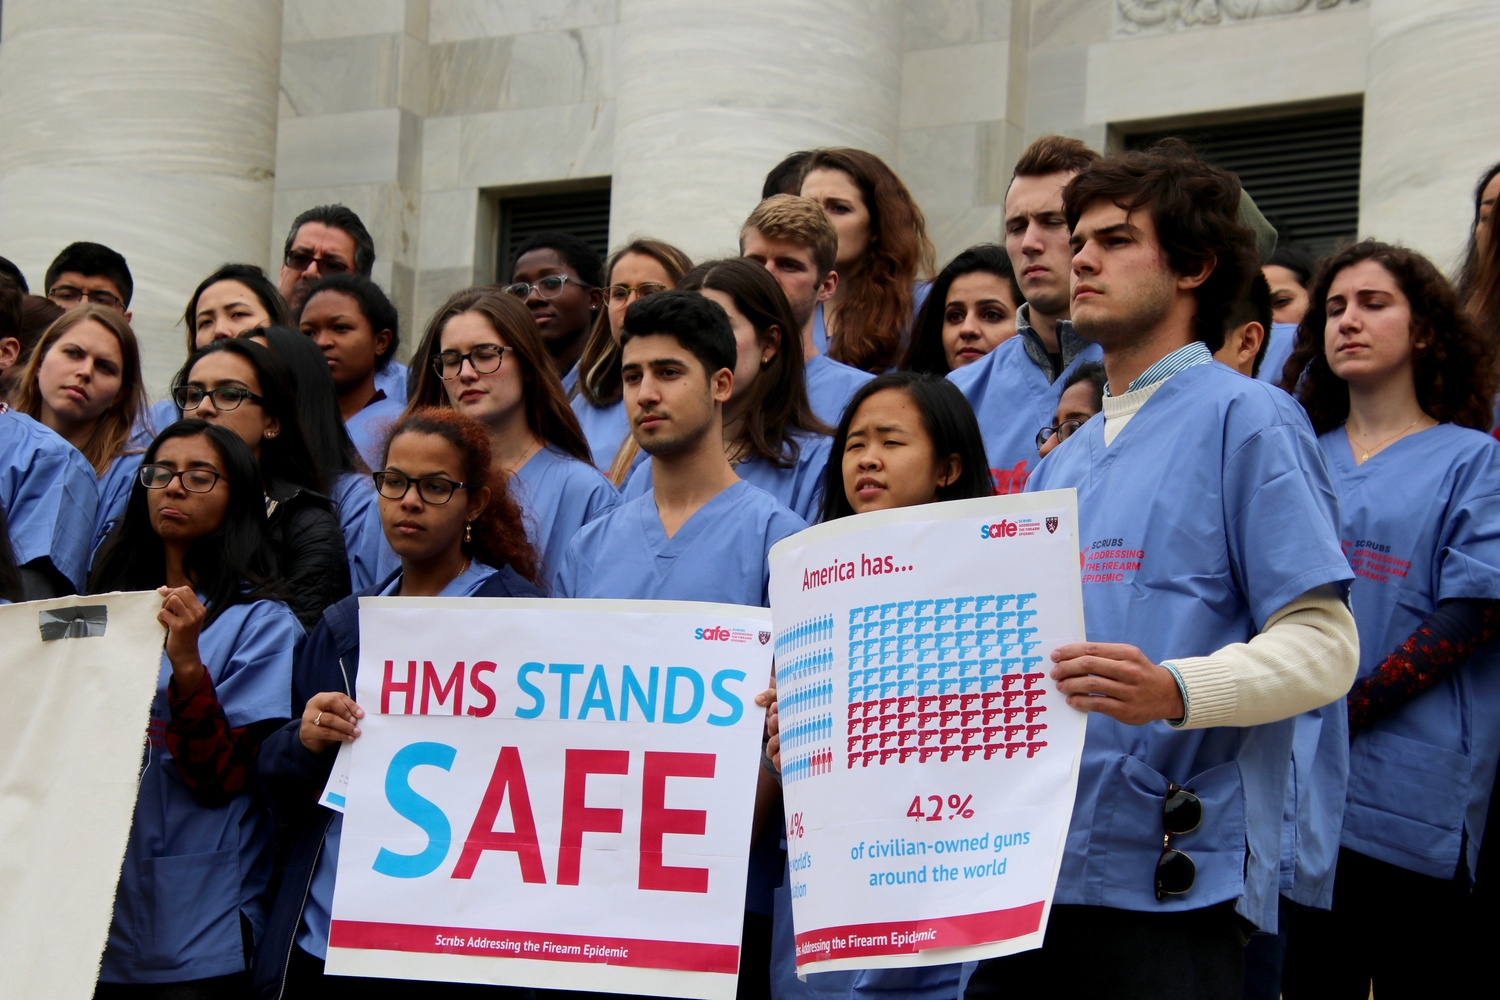 Harvard Medical School students take part in a nationwide movement in the medical community to address gun violence.